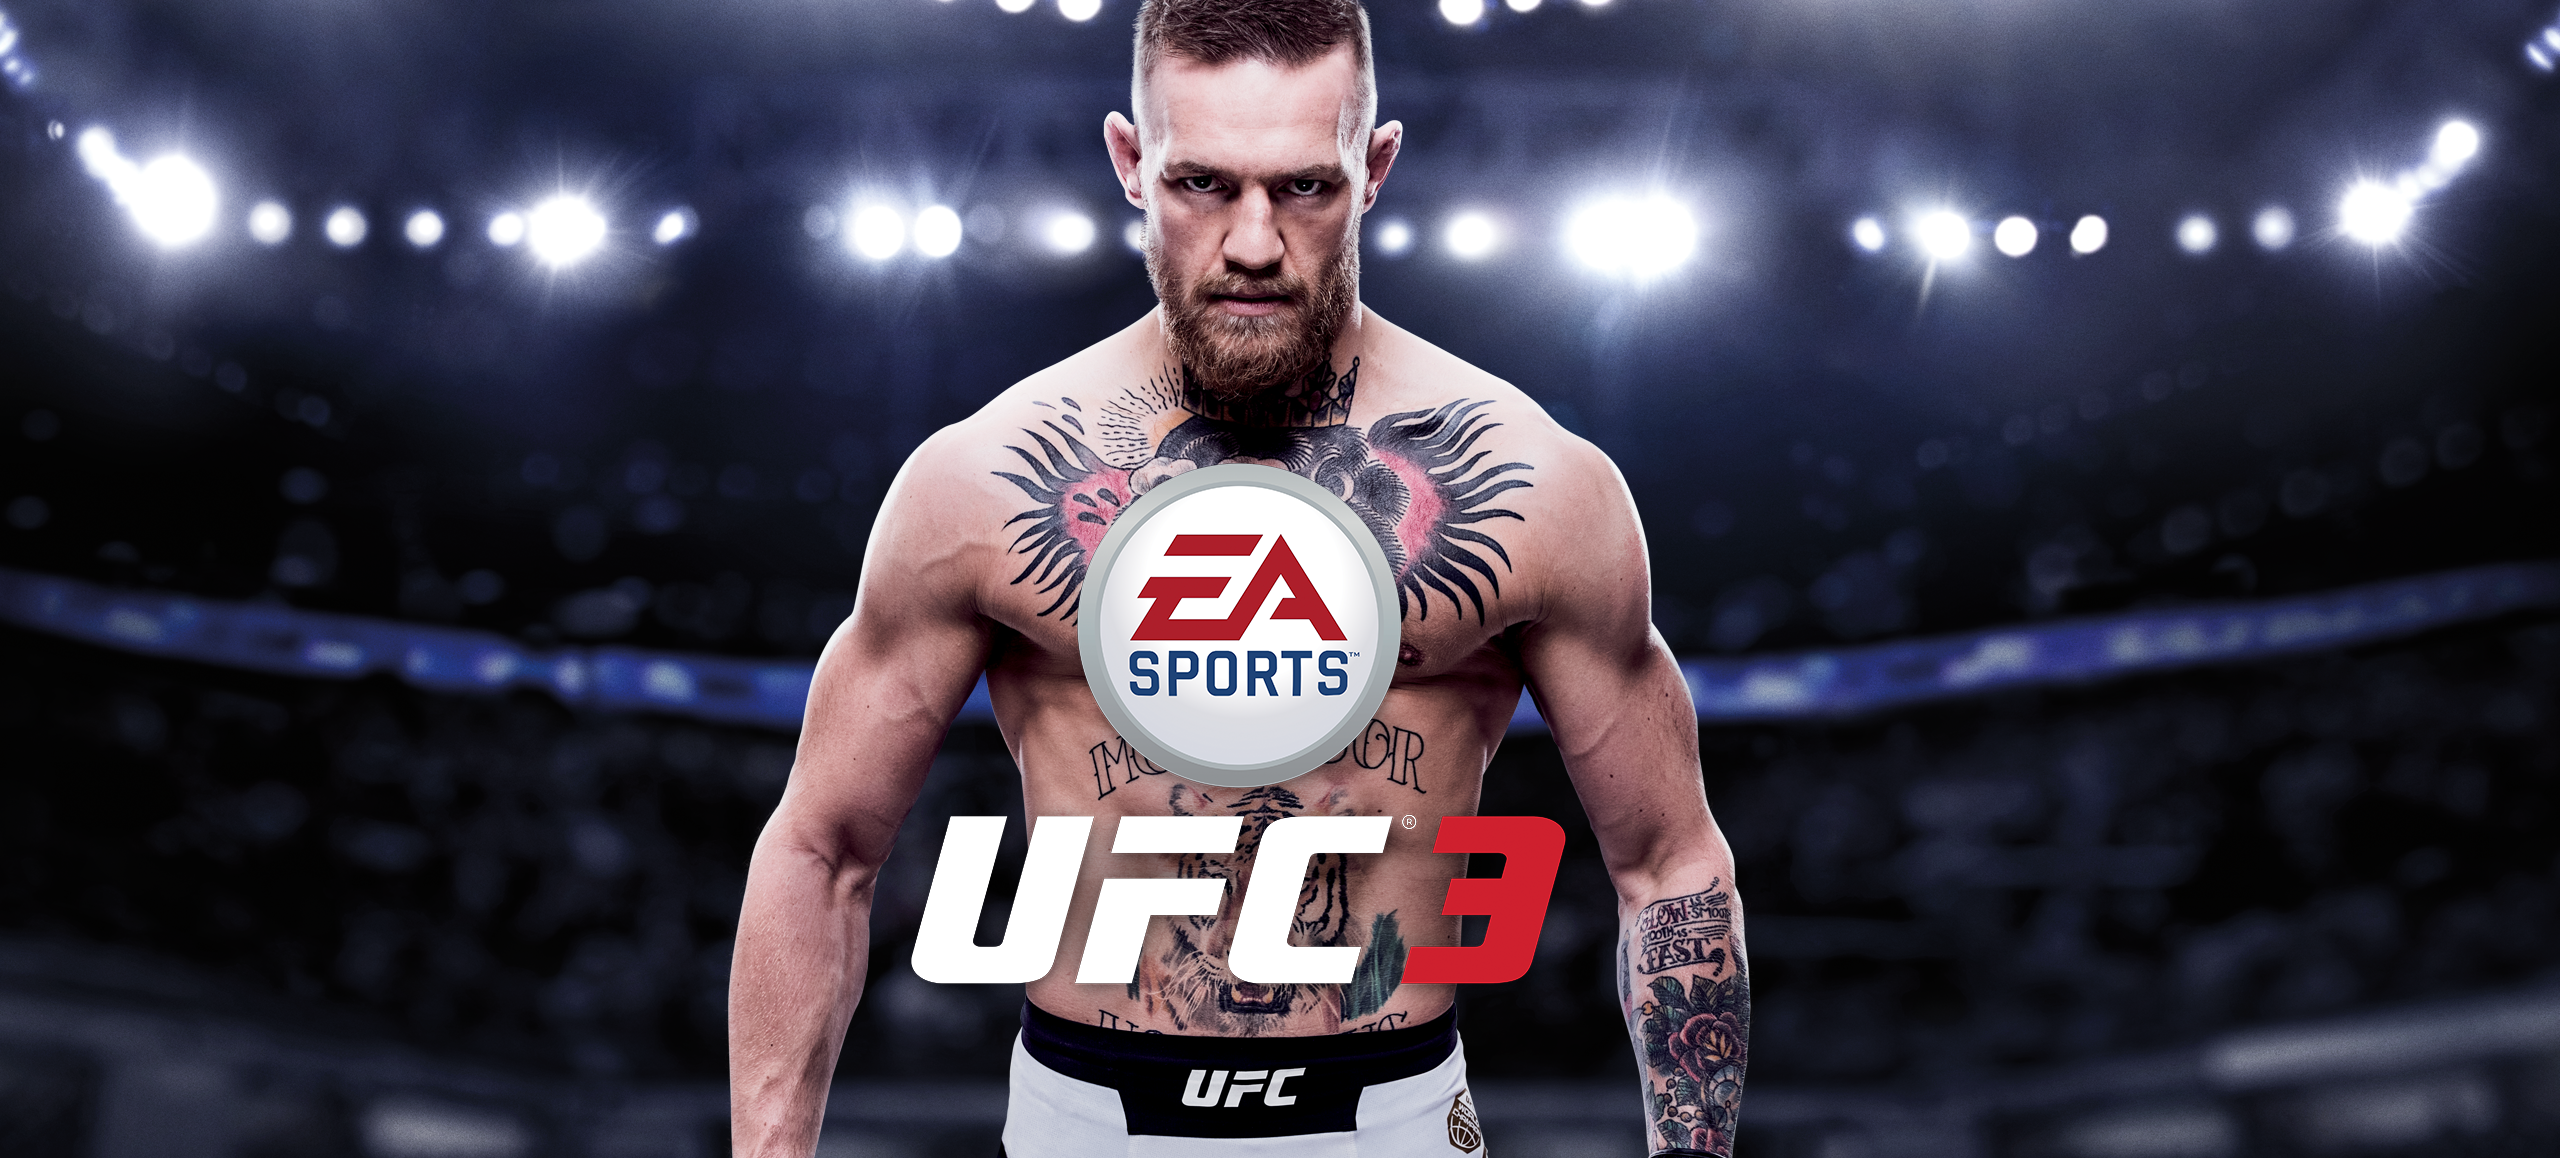 Buy 🟢EA SPORTS UFC 3 (Xbox One) and download